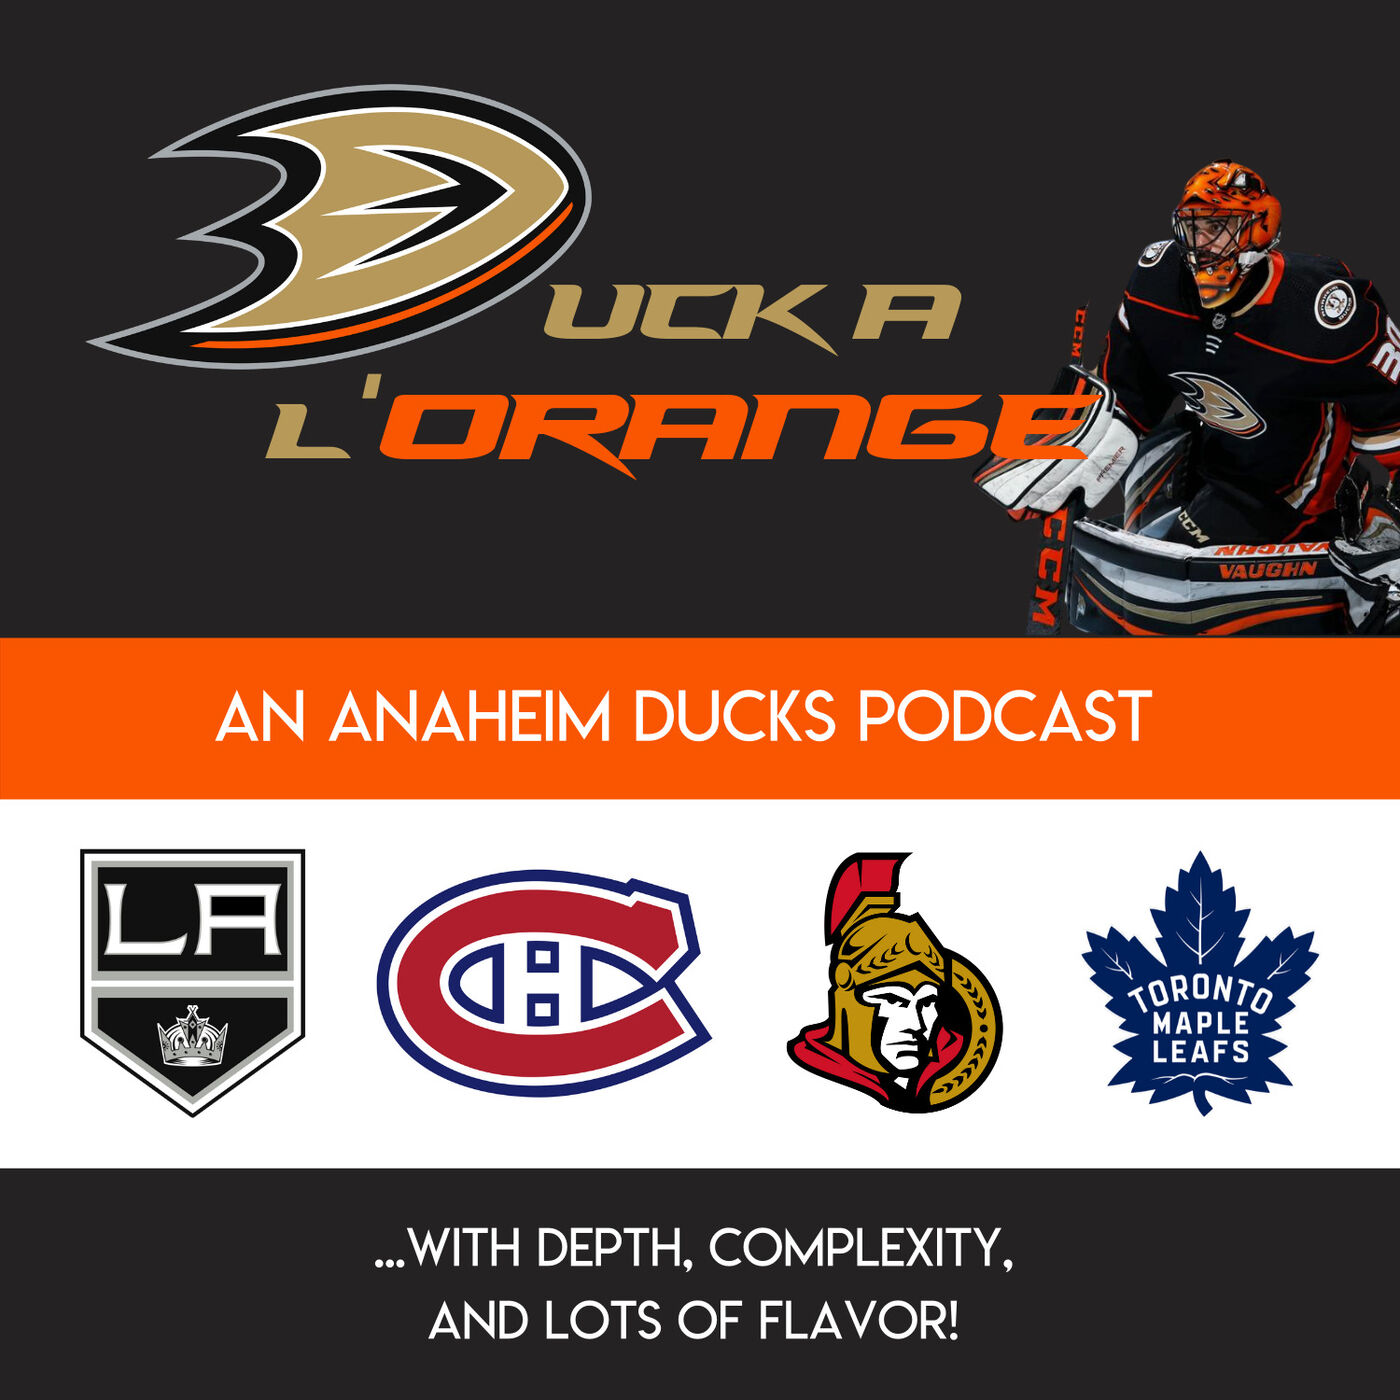 Episode#3: Who's Up for a Road Trip?! Recapping the Ducks Road Trip vs. LA, OTT, MTL & TOR w/ Ducks improving a little to 22-26-7 (7th Pacific)